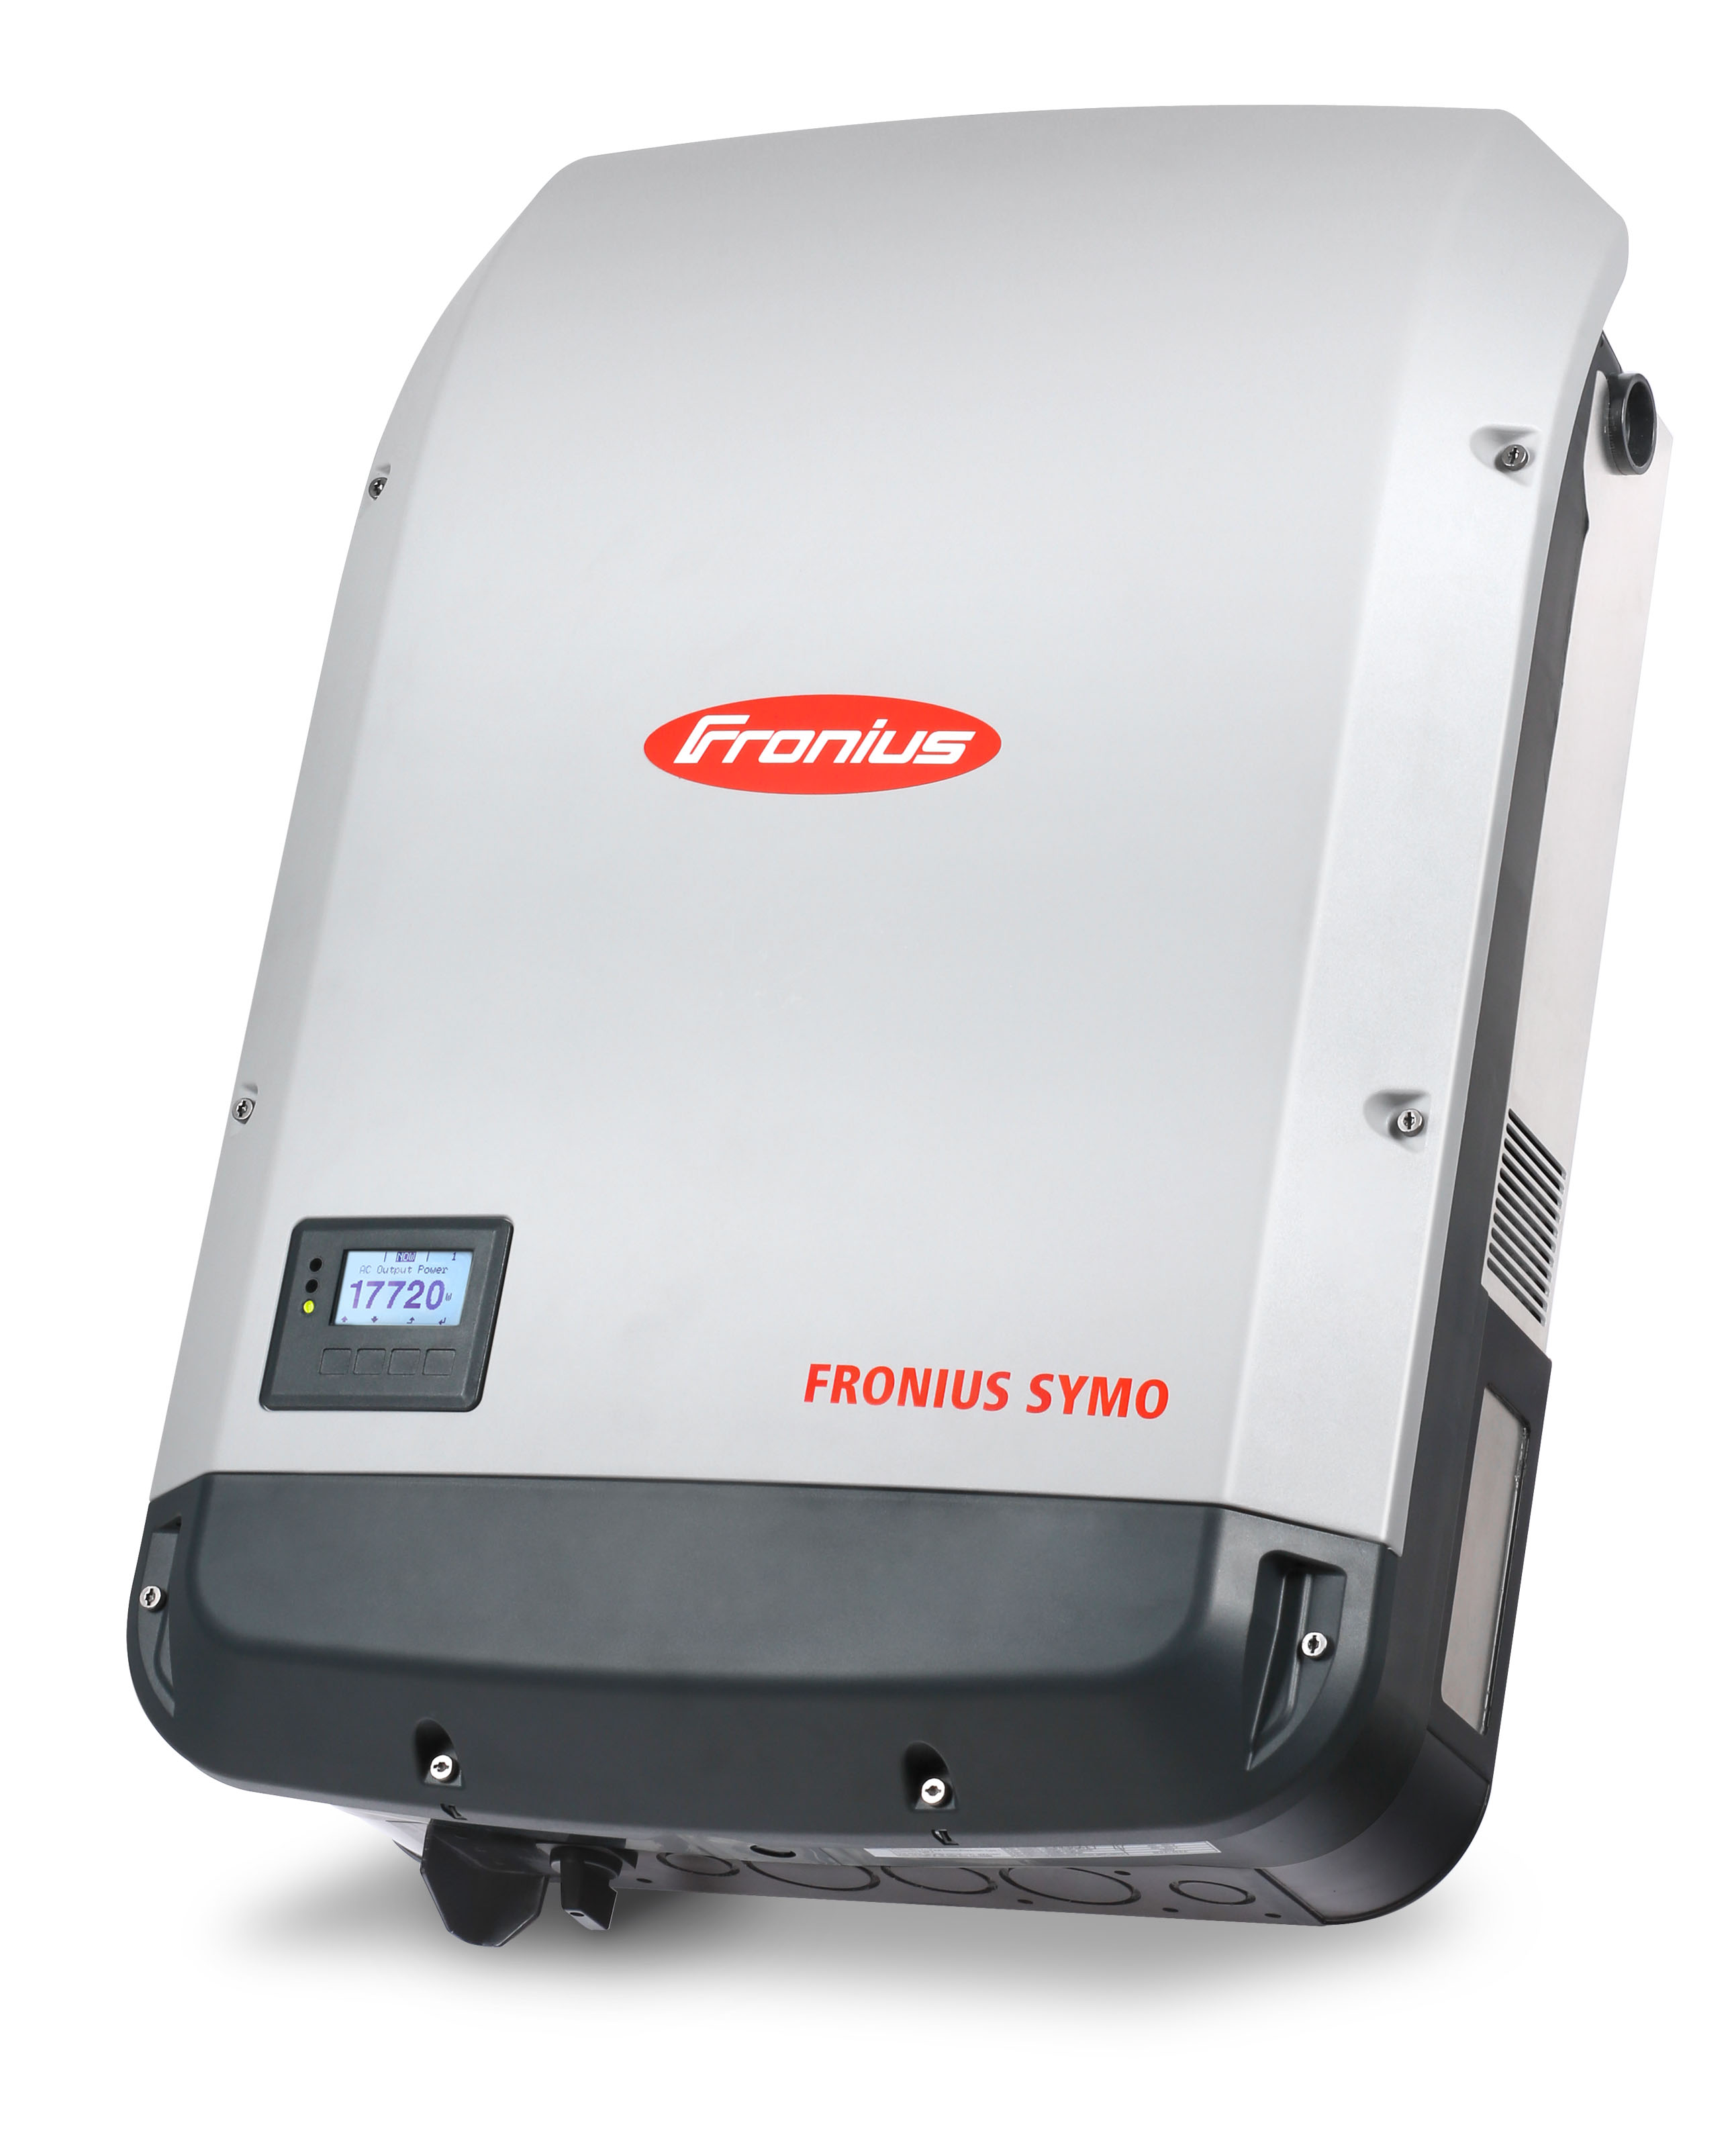 FRONIUS, SYMO 17.5-3 480, NON-ISOLATED STRING INVERTER, 17.5 KW, 480 VAC, LITE - NO DATAMANAGER 2.0 CARD